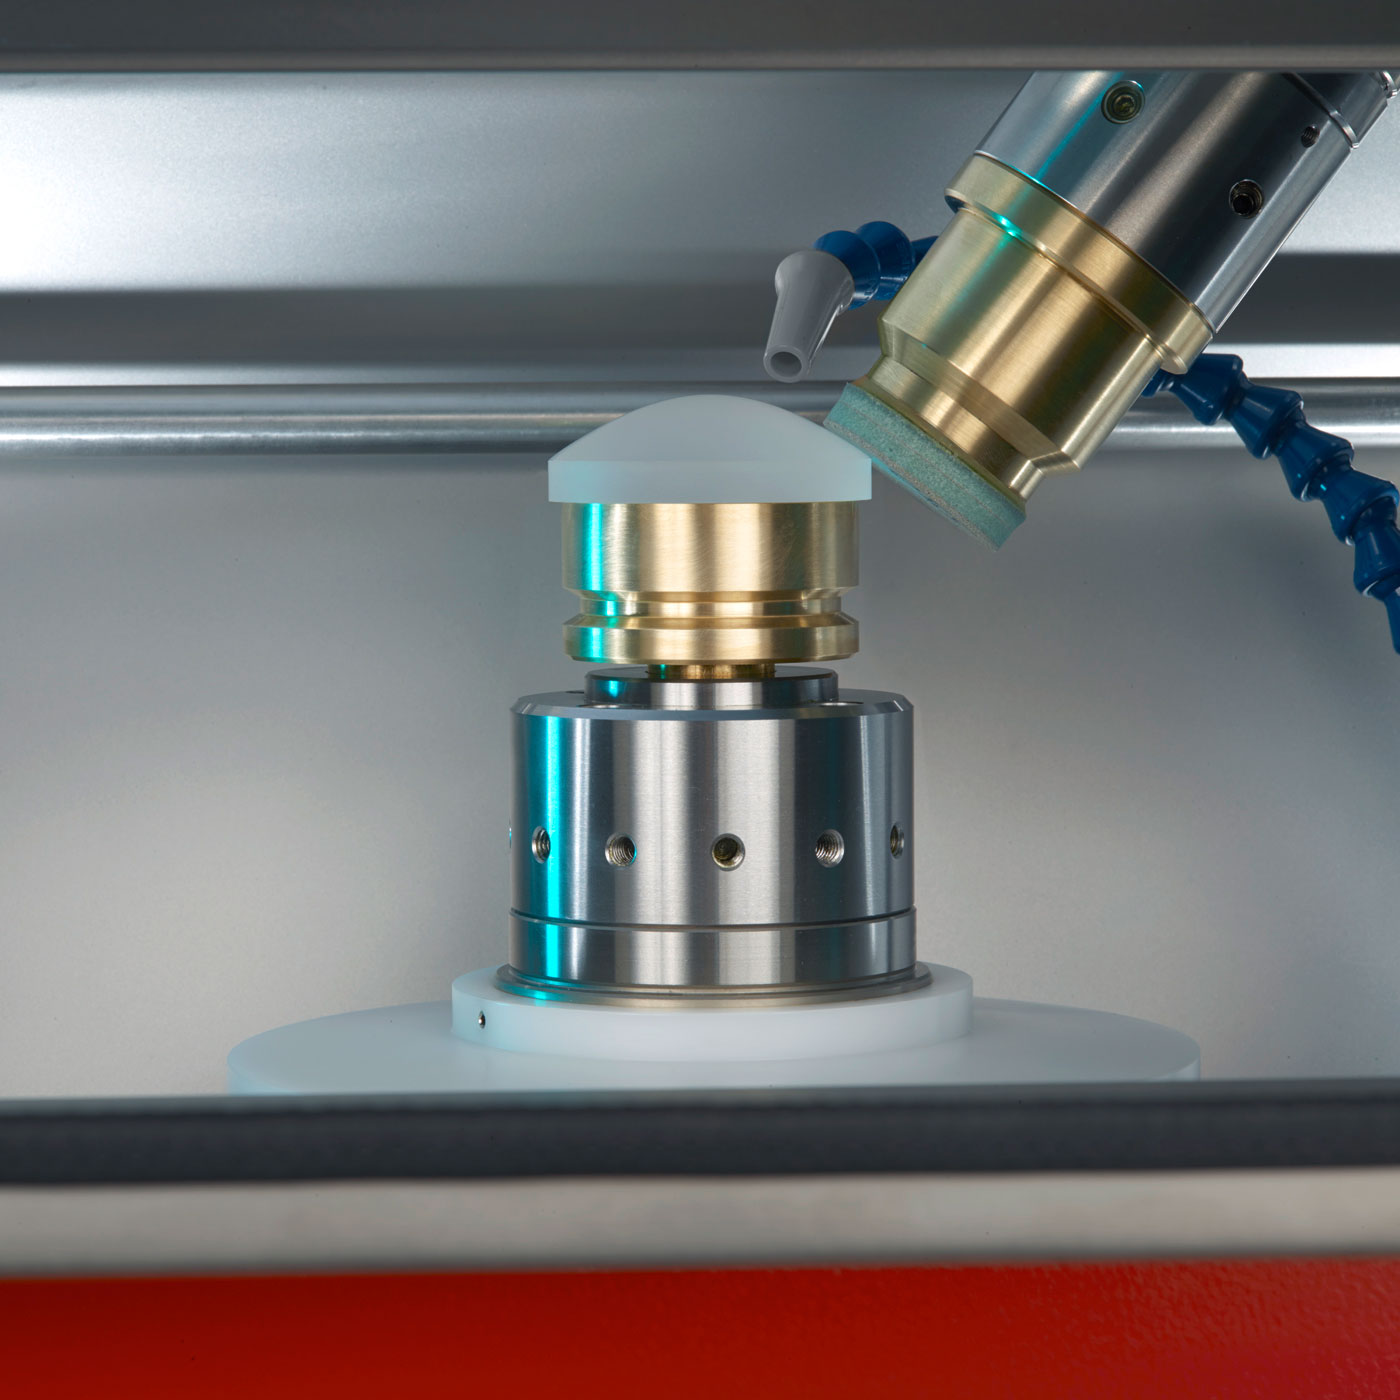 Schneider Optical Machines - SLP 80 - Spherical Polishing